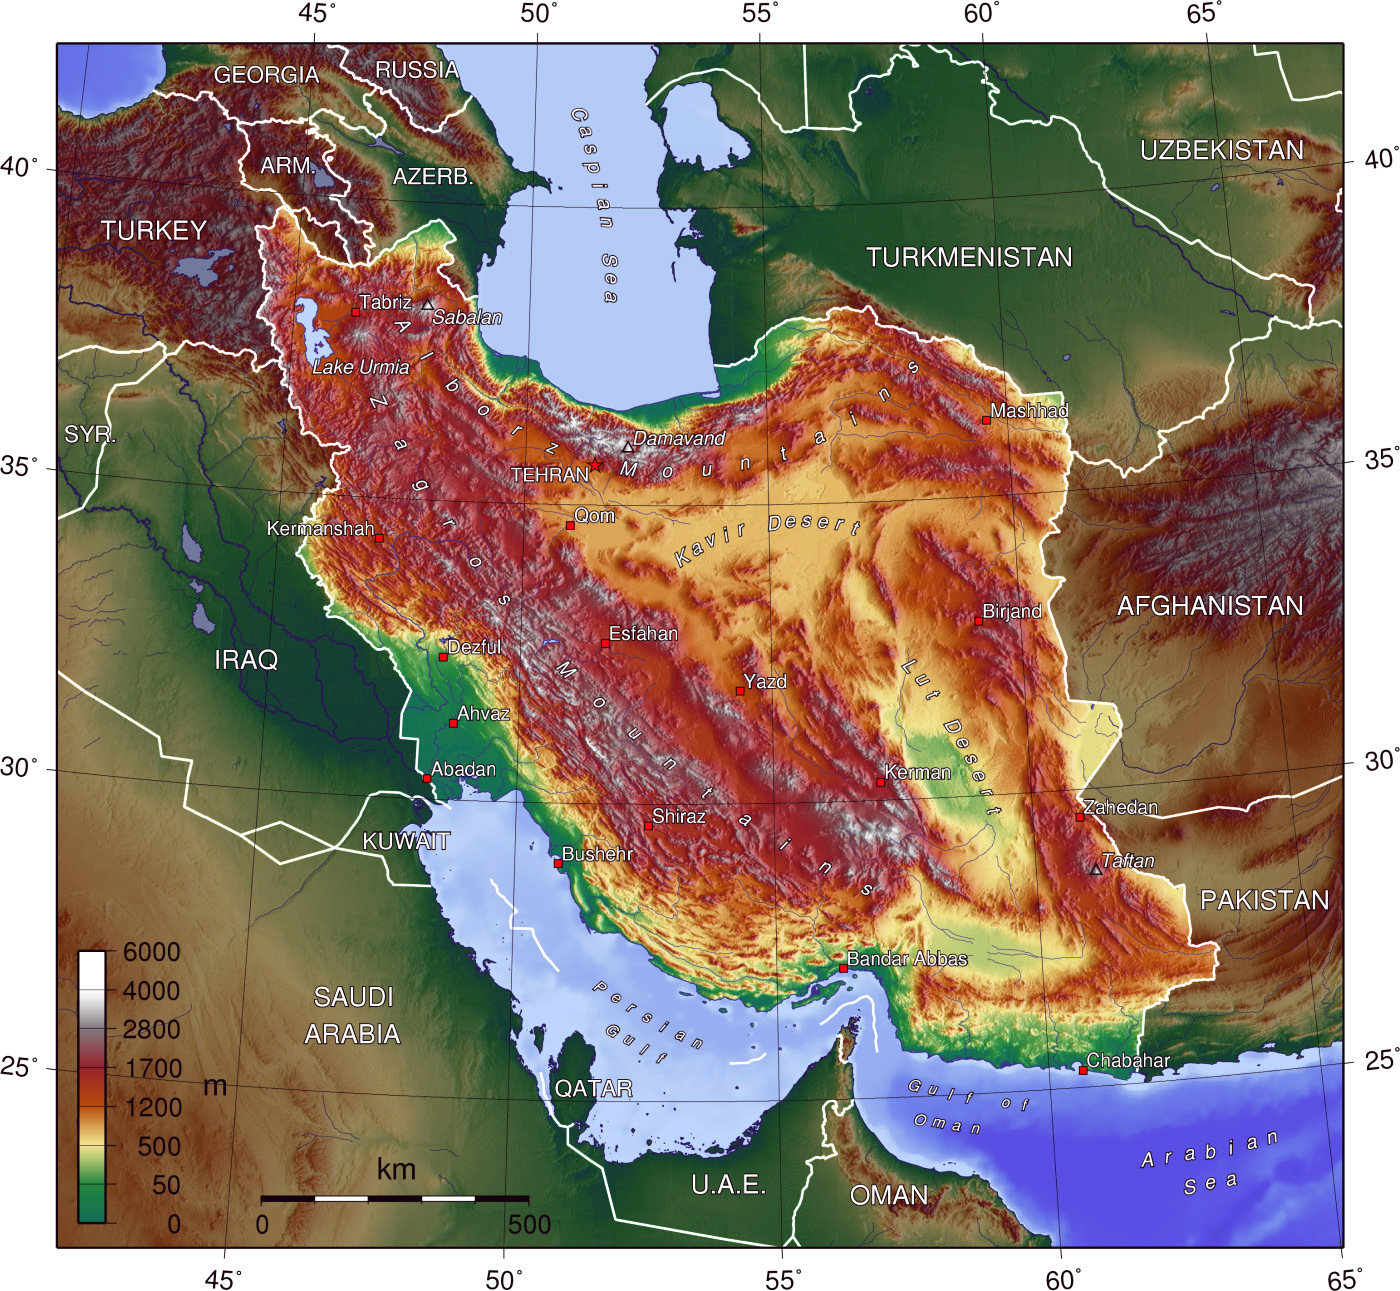 detailed_physical_map_of_iran_and_iraq